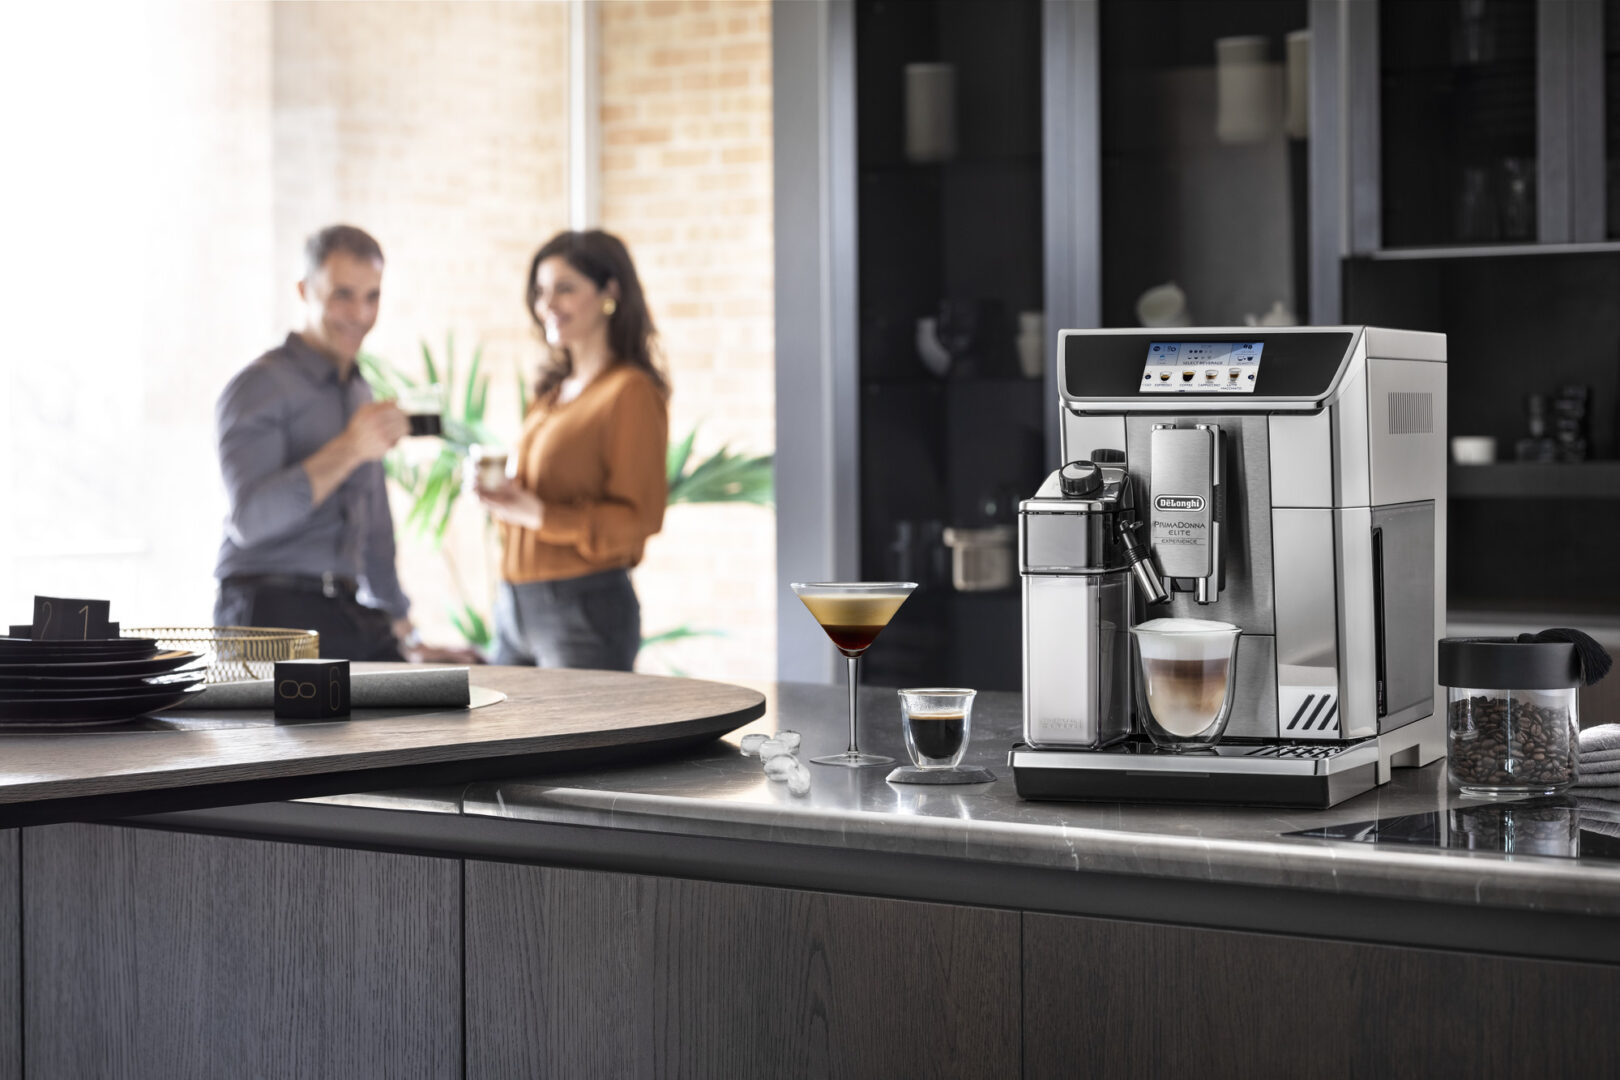 a coffee machine placed on a kitchen countertop